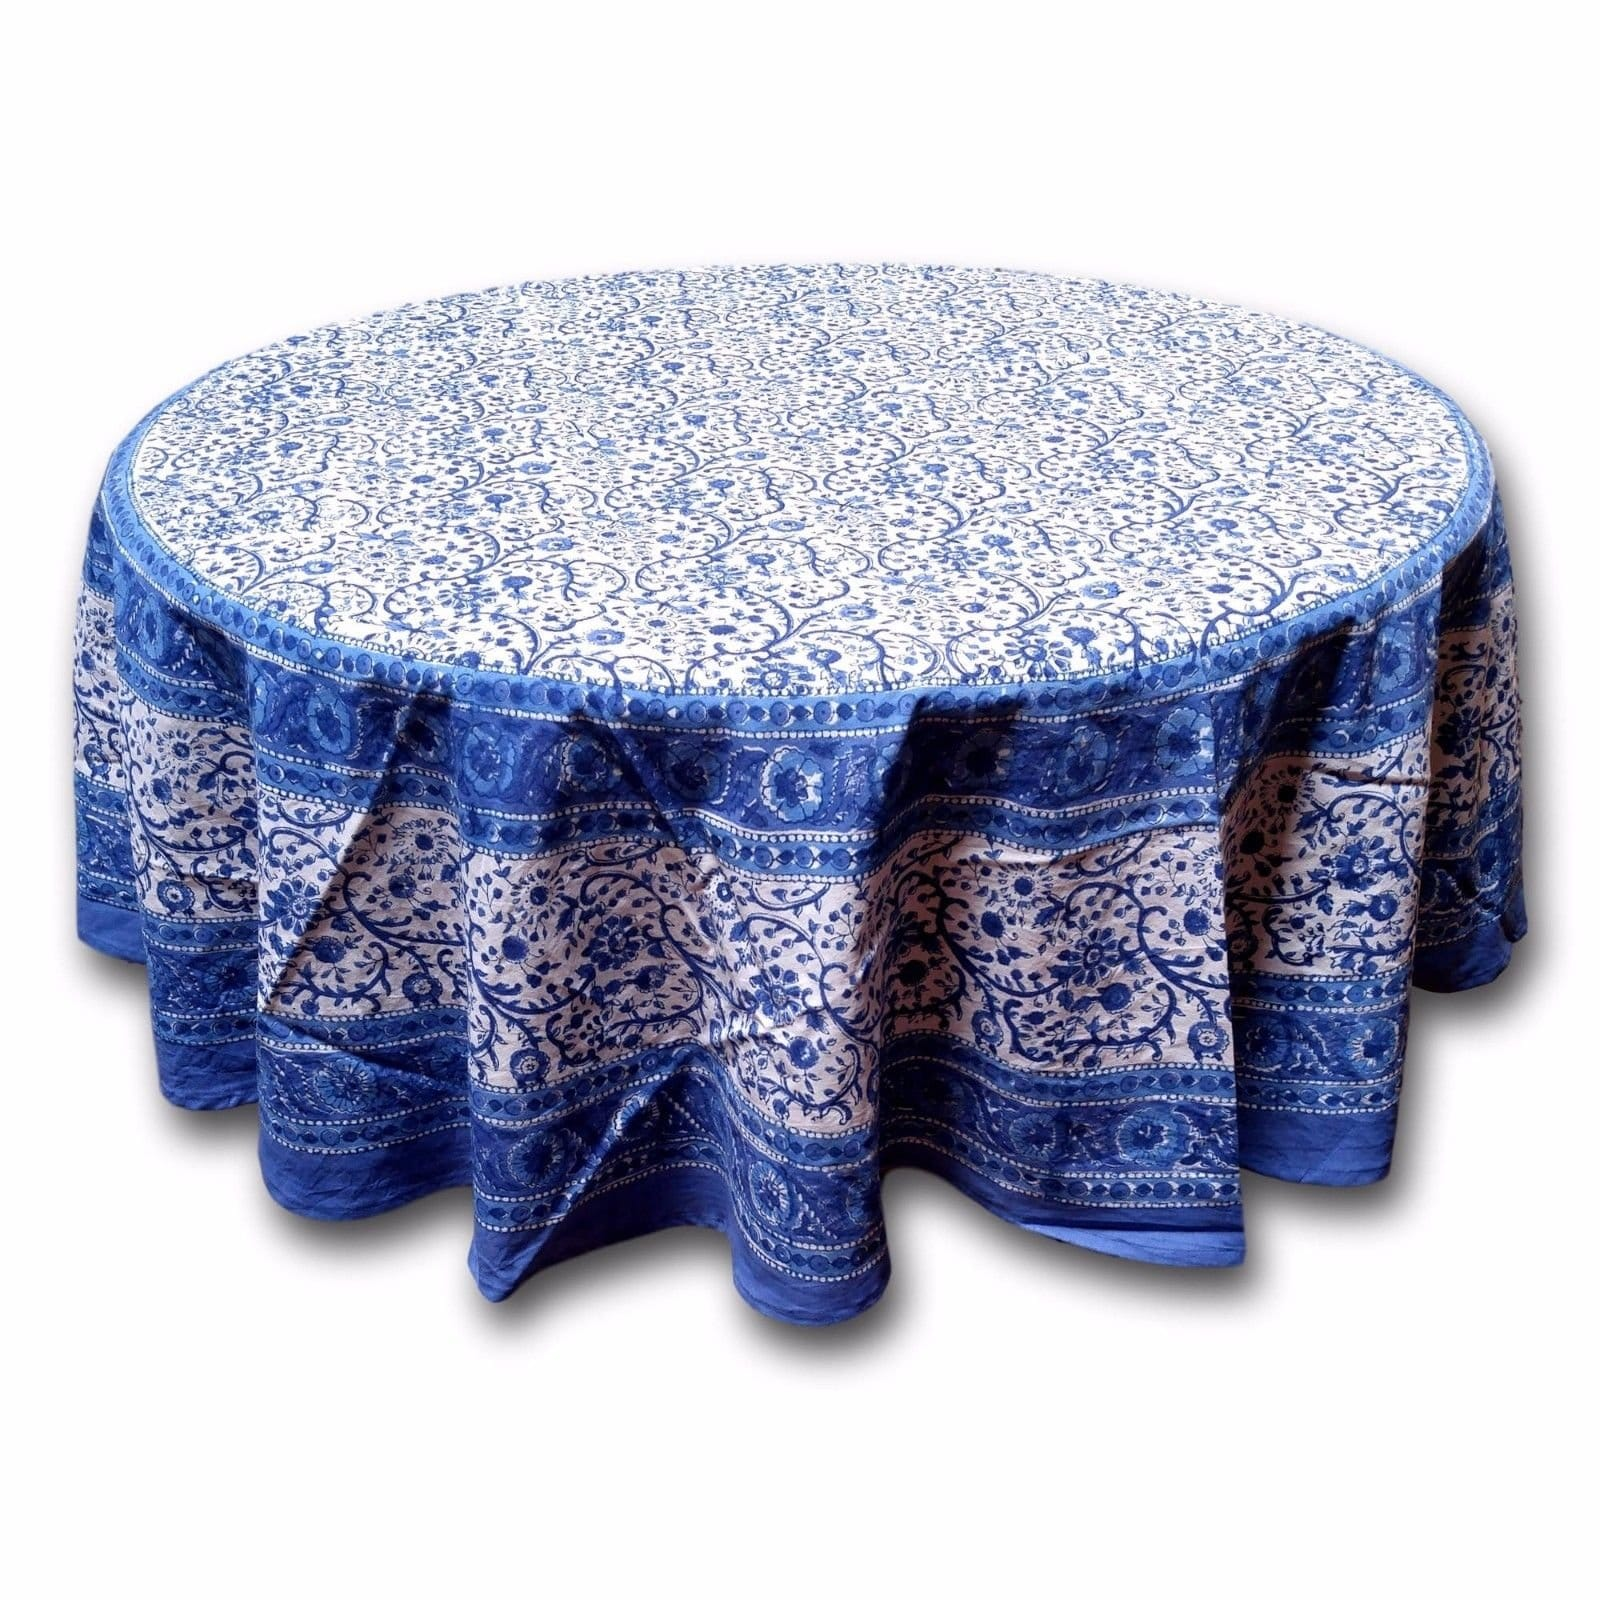 round tablecloths our best table rajasthan block print floral tablecloth rectangular cotton napkins placemats runner accent cloths linens decor pottery barn kids fabric storage